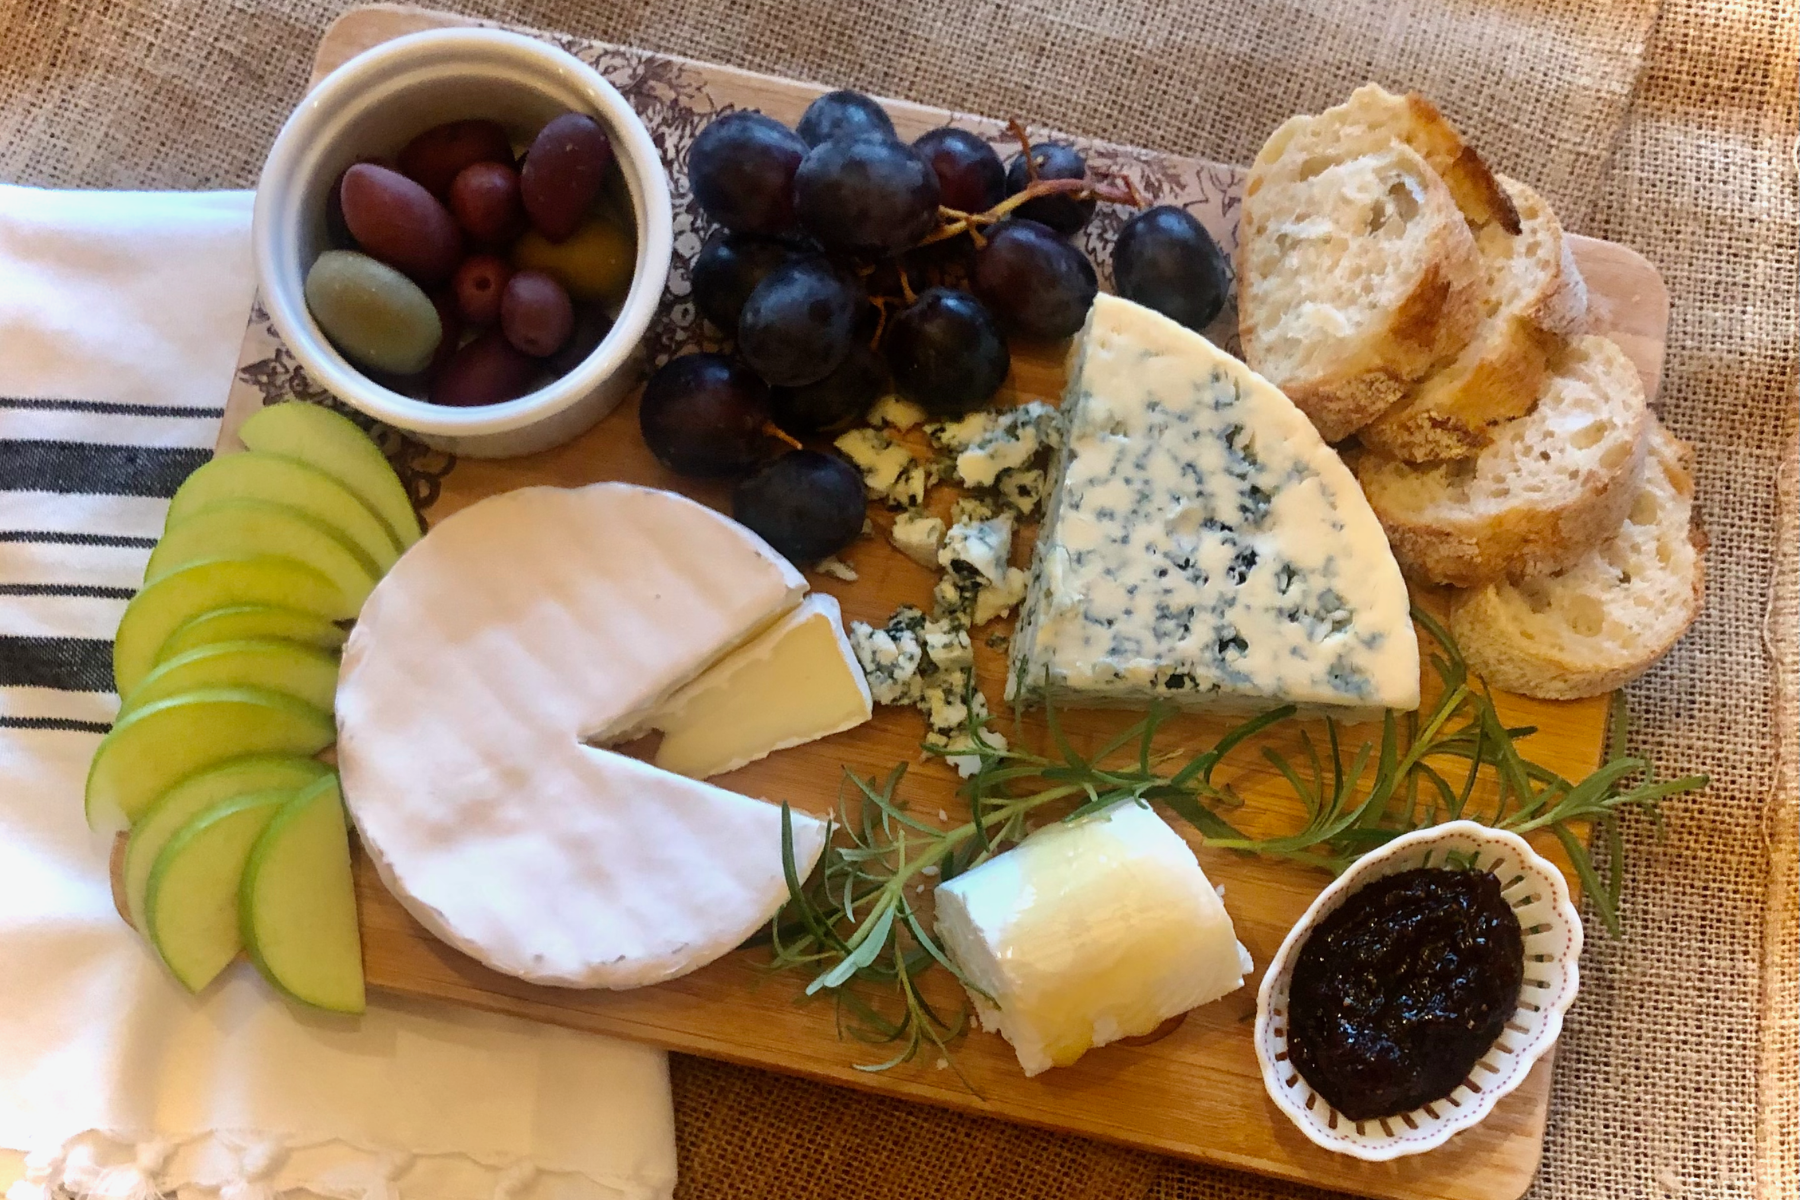 How to Make a French Cheese Board